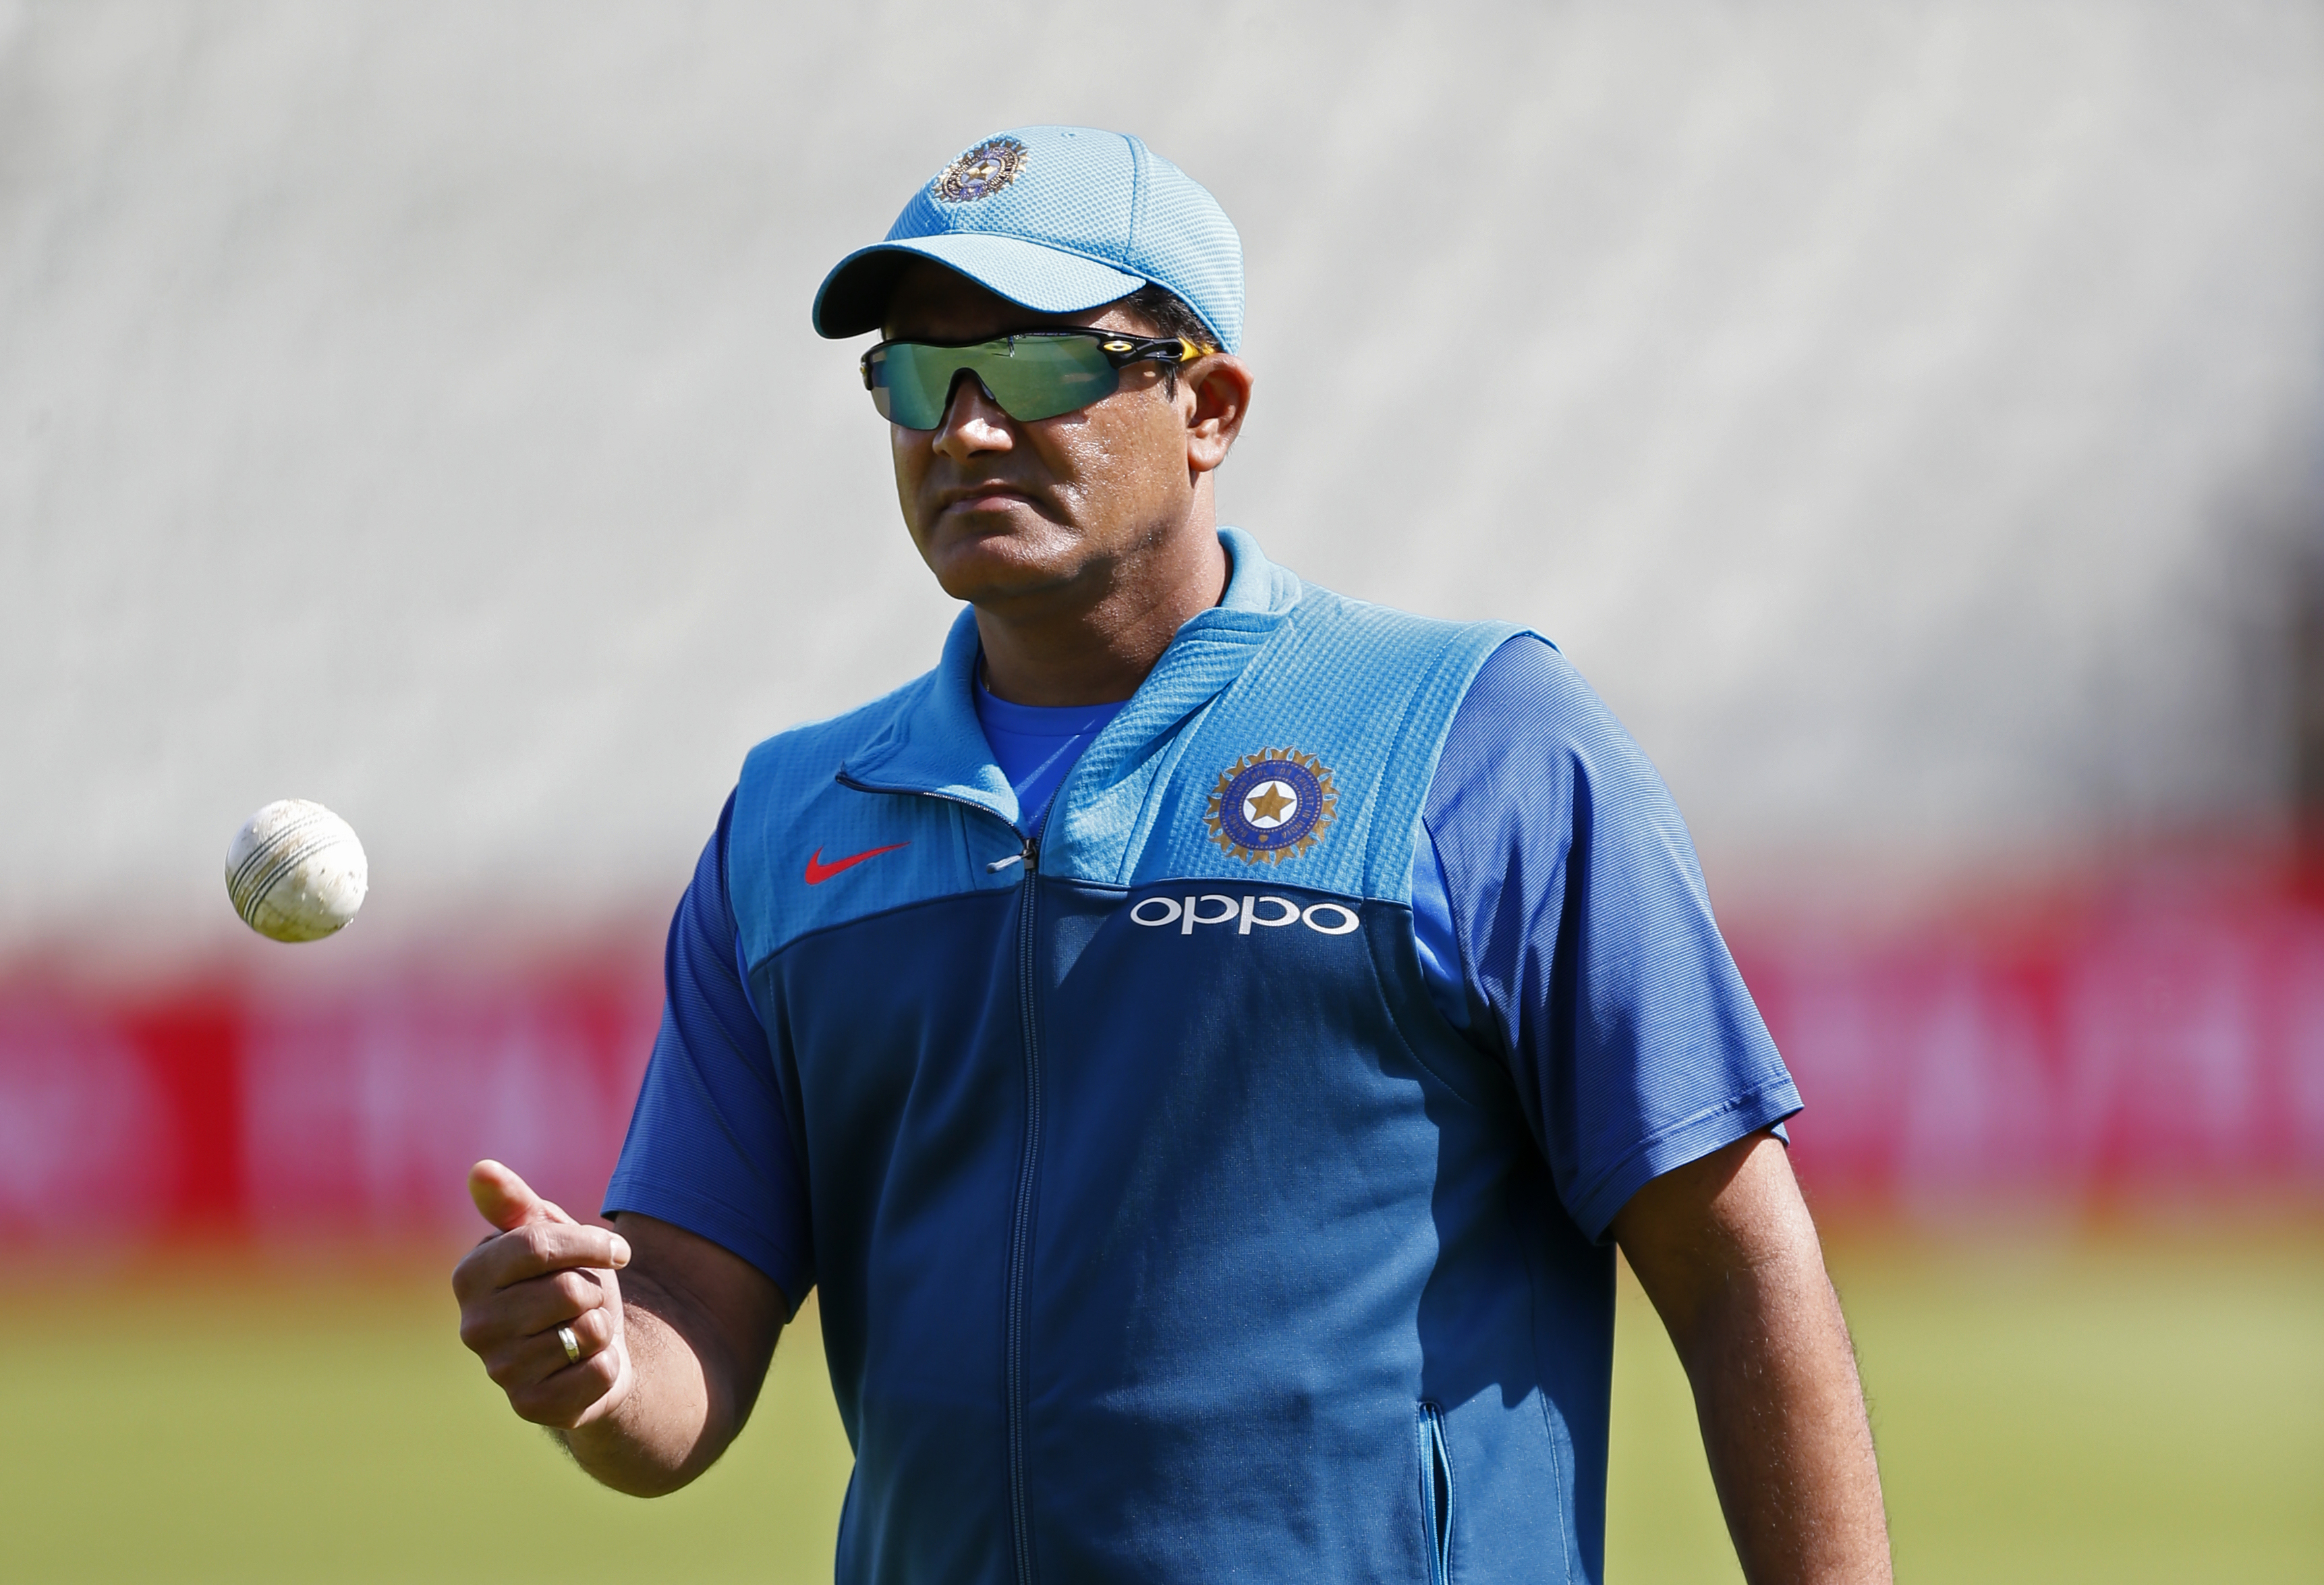 Cricket: India's Anil Kumble 'stays back' for ICC meeting